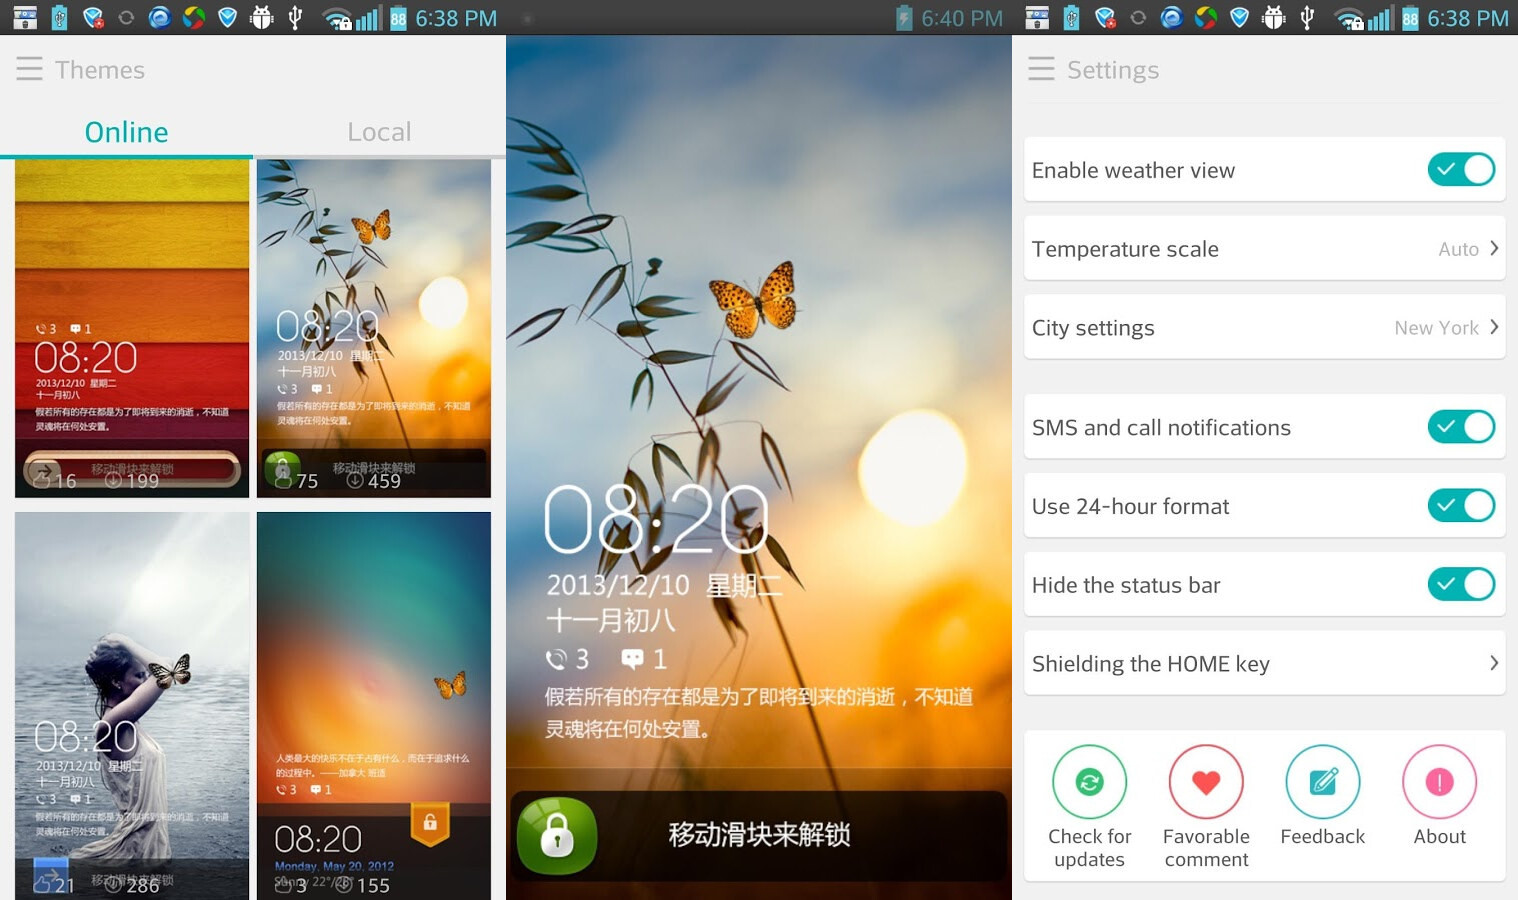 Samsung Themes Prevents Multiple Lock Screen Wallpaper: 10 Best Lock Screen Apps For Android (2014 Edition